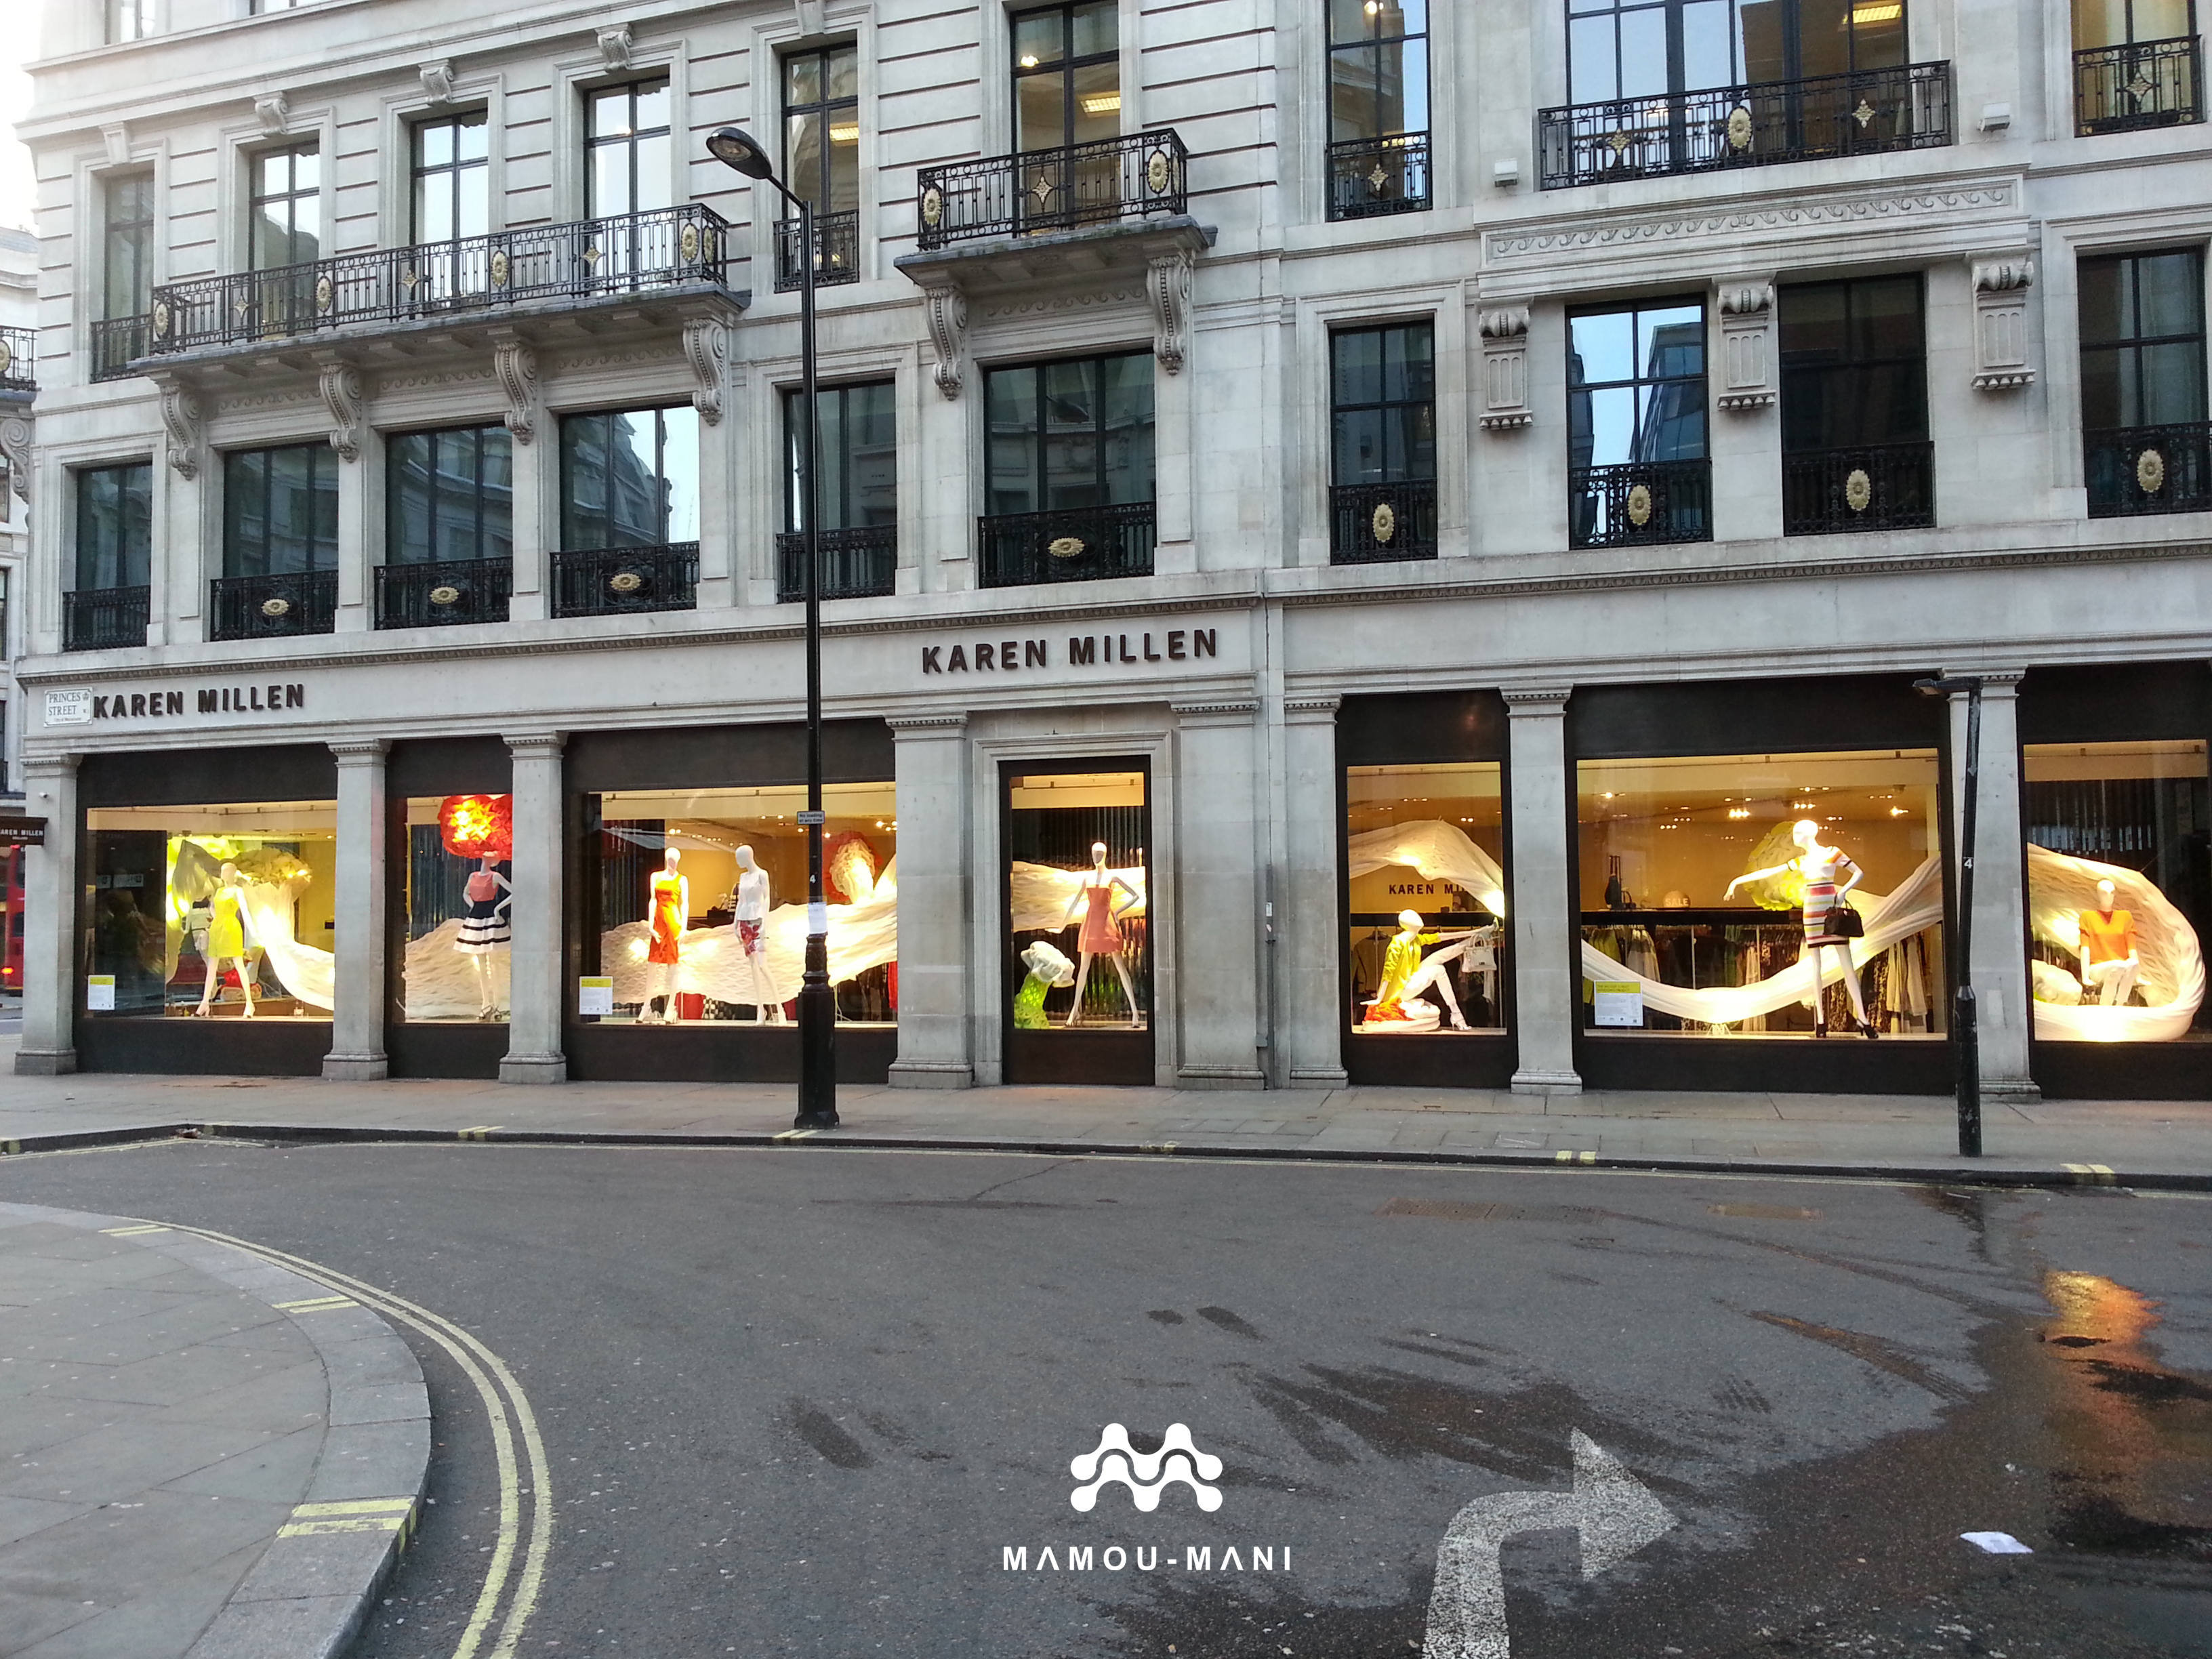 The regent street windows project 2012 - Picture Of The Karen Millen Regent Street Store Windows On Princes Street Mamou Mani